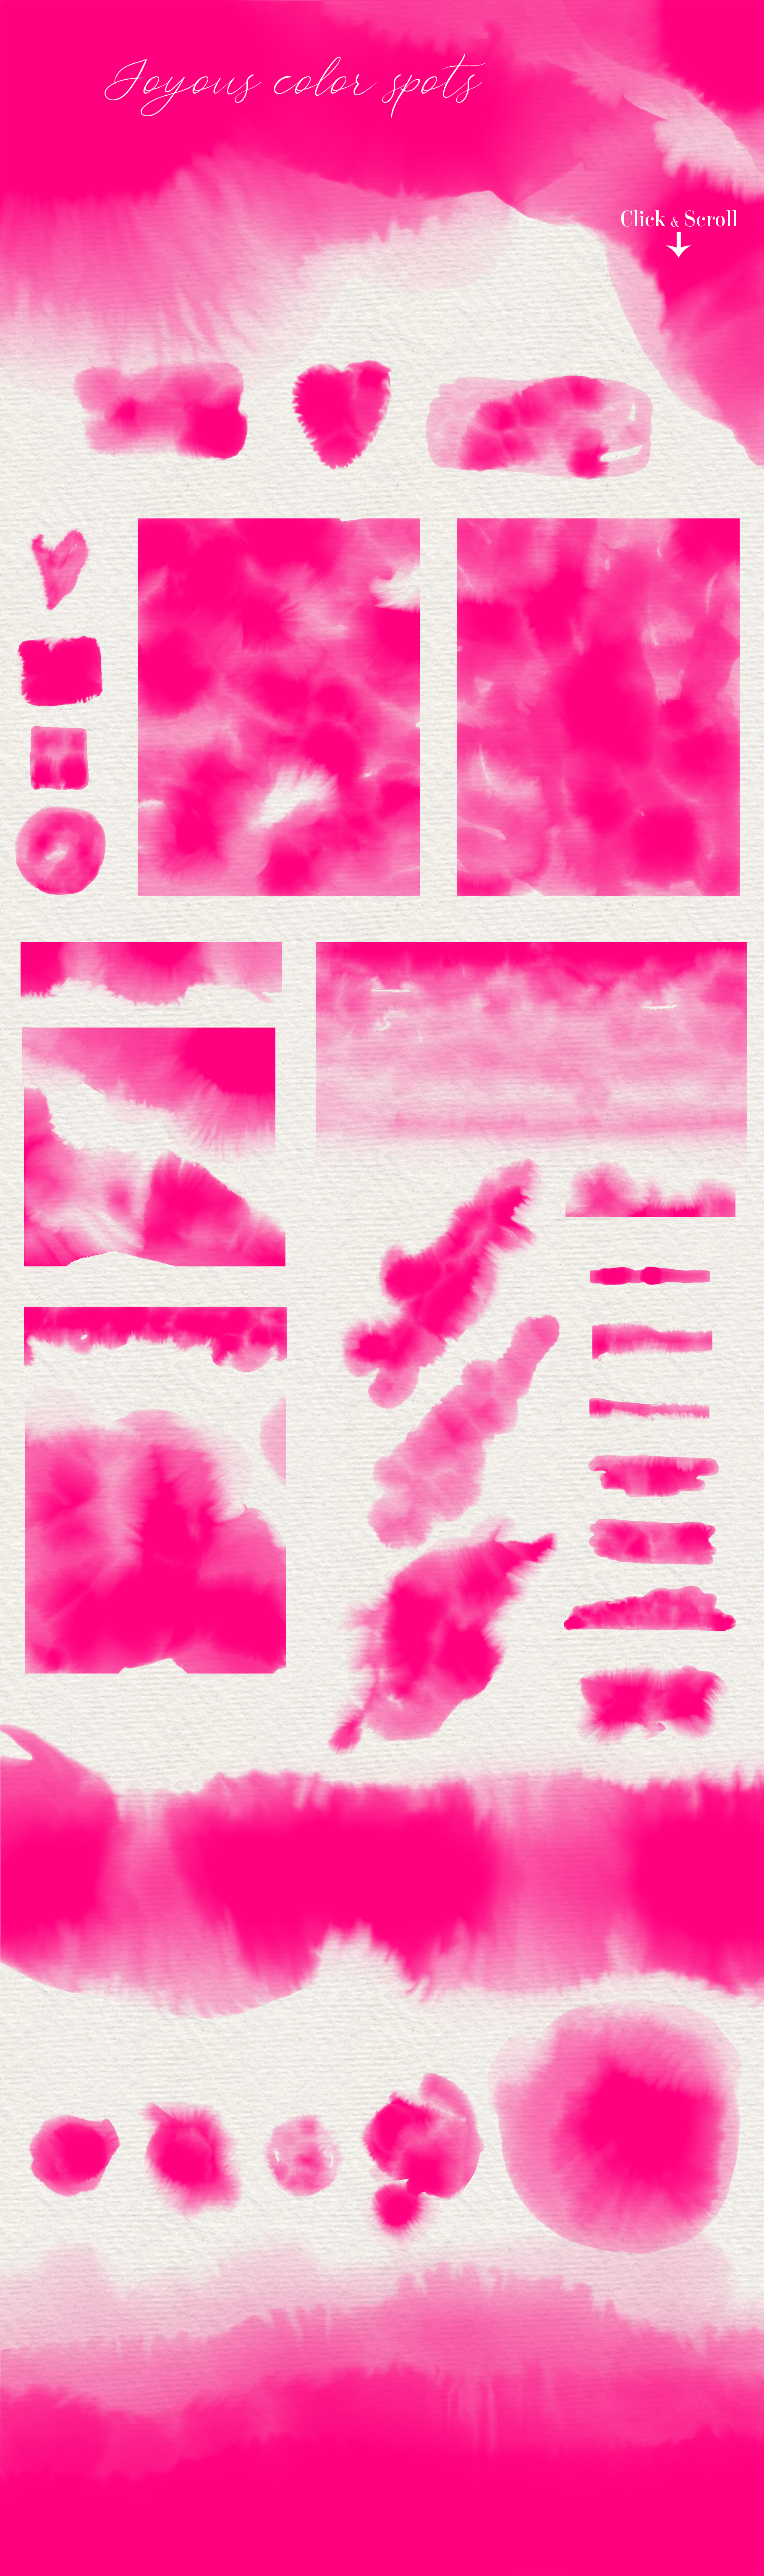 Hot Pink - 45 Watercolor Textures example image 4